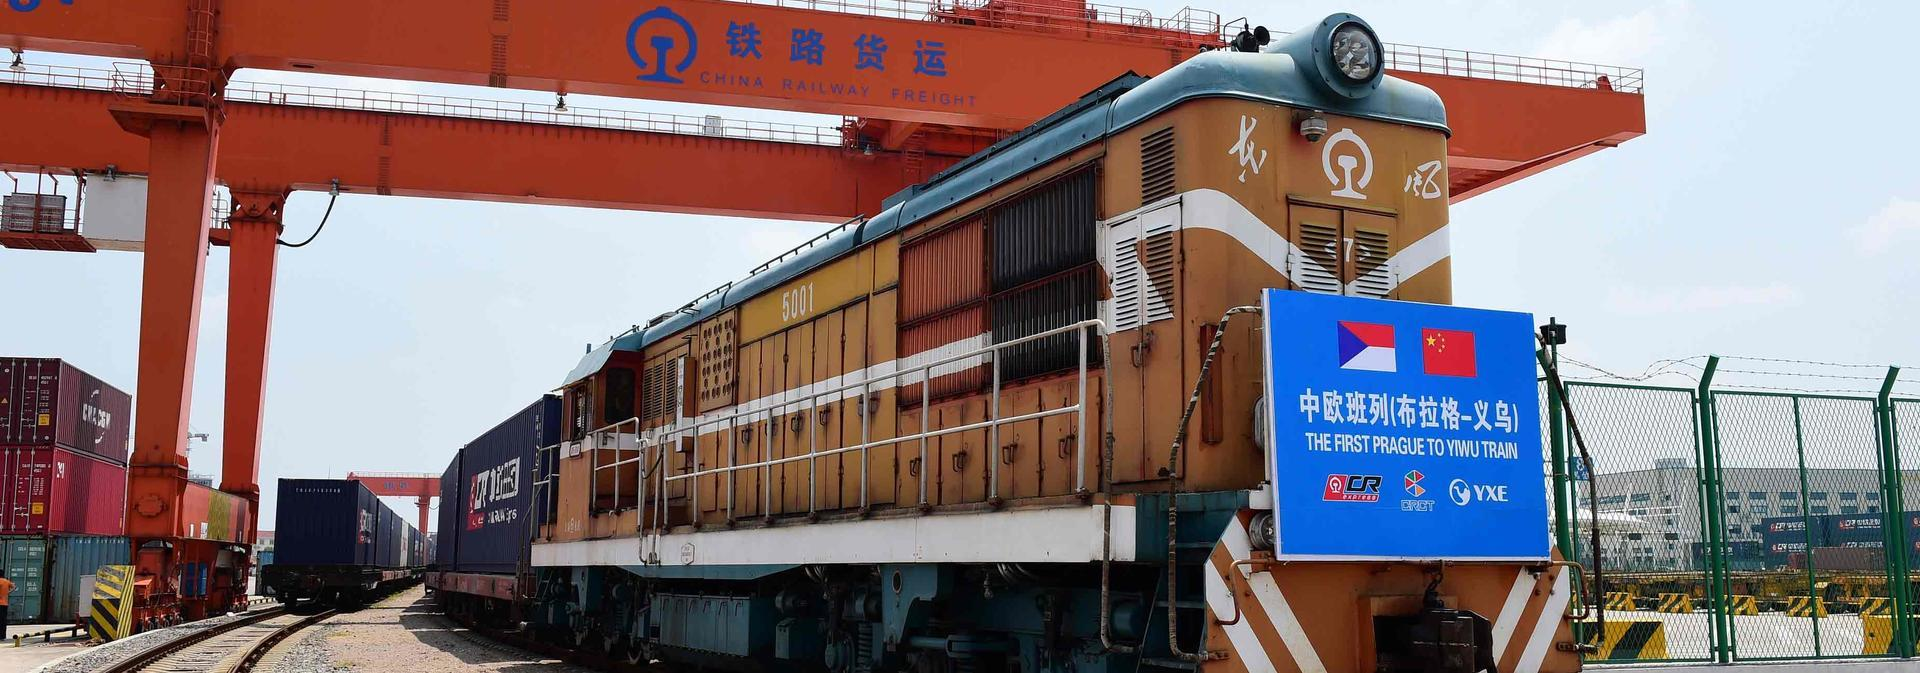 Freight train in China